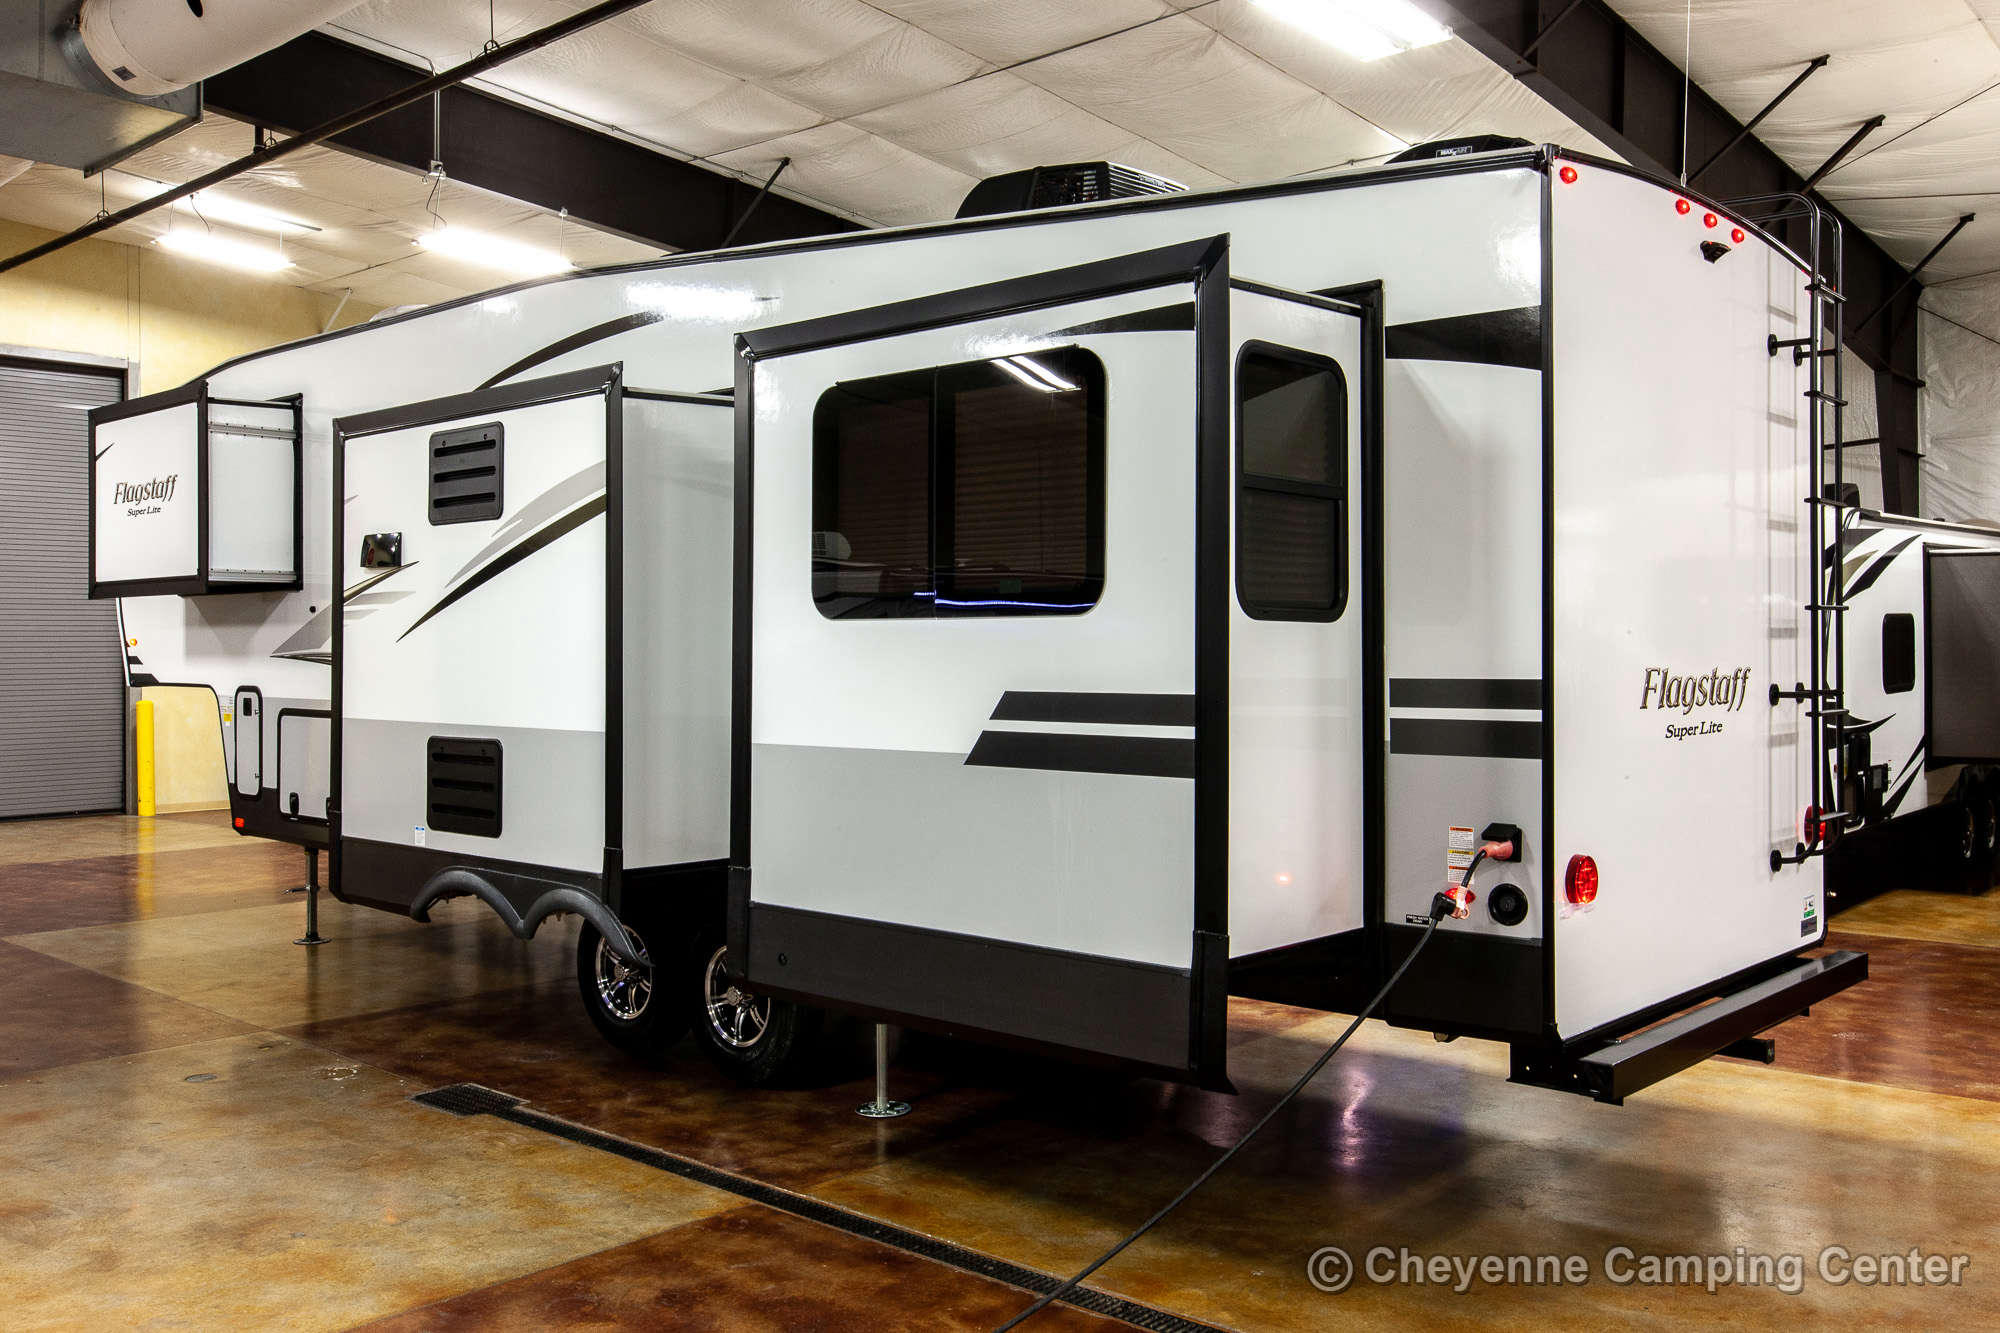 2021 Forest River Flagstaff Super Lite 529RLKS Fifth Wheel Exterior Image